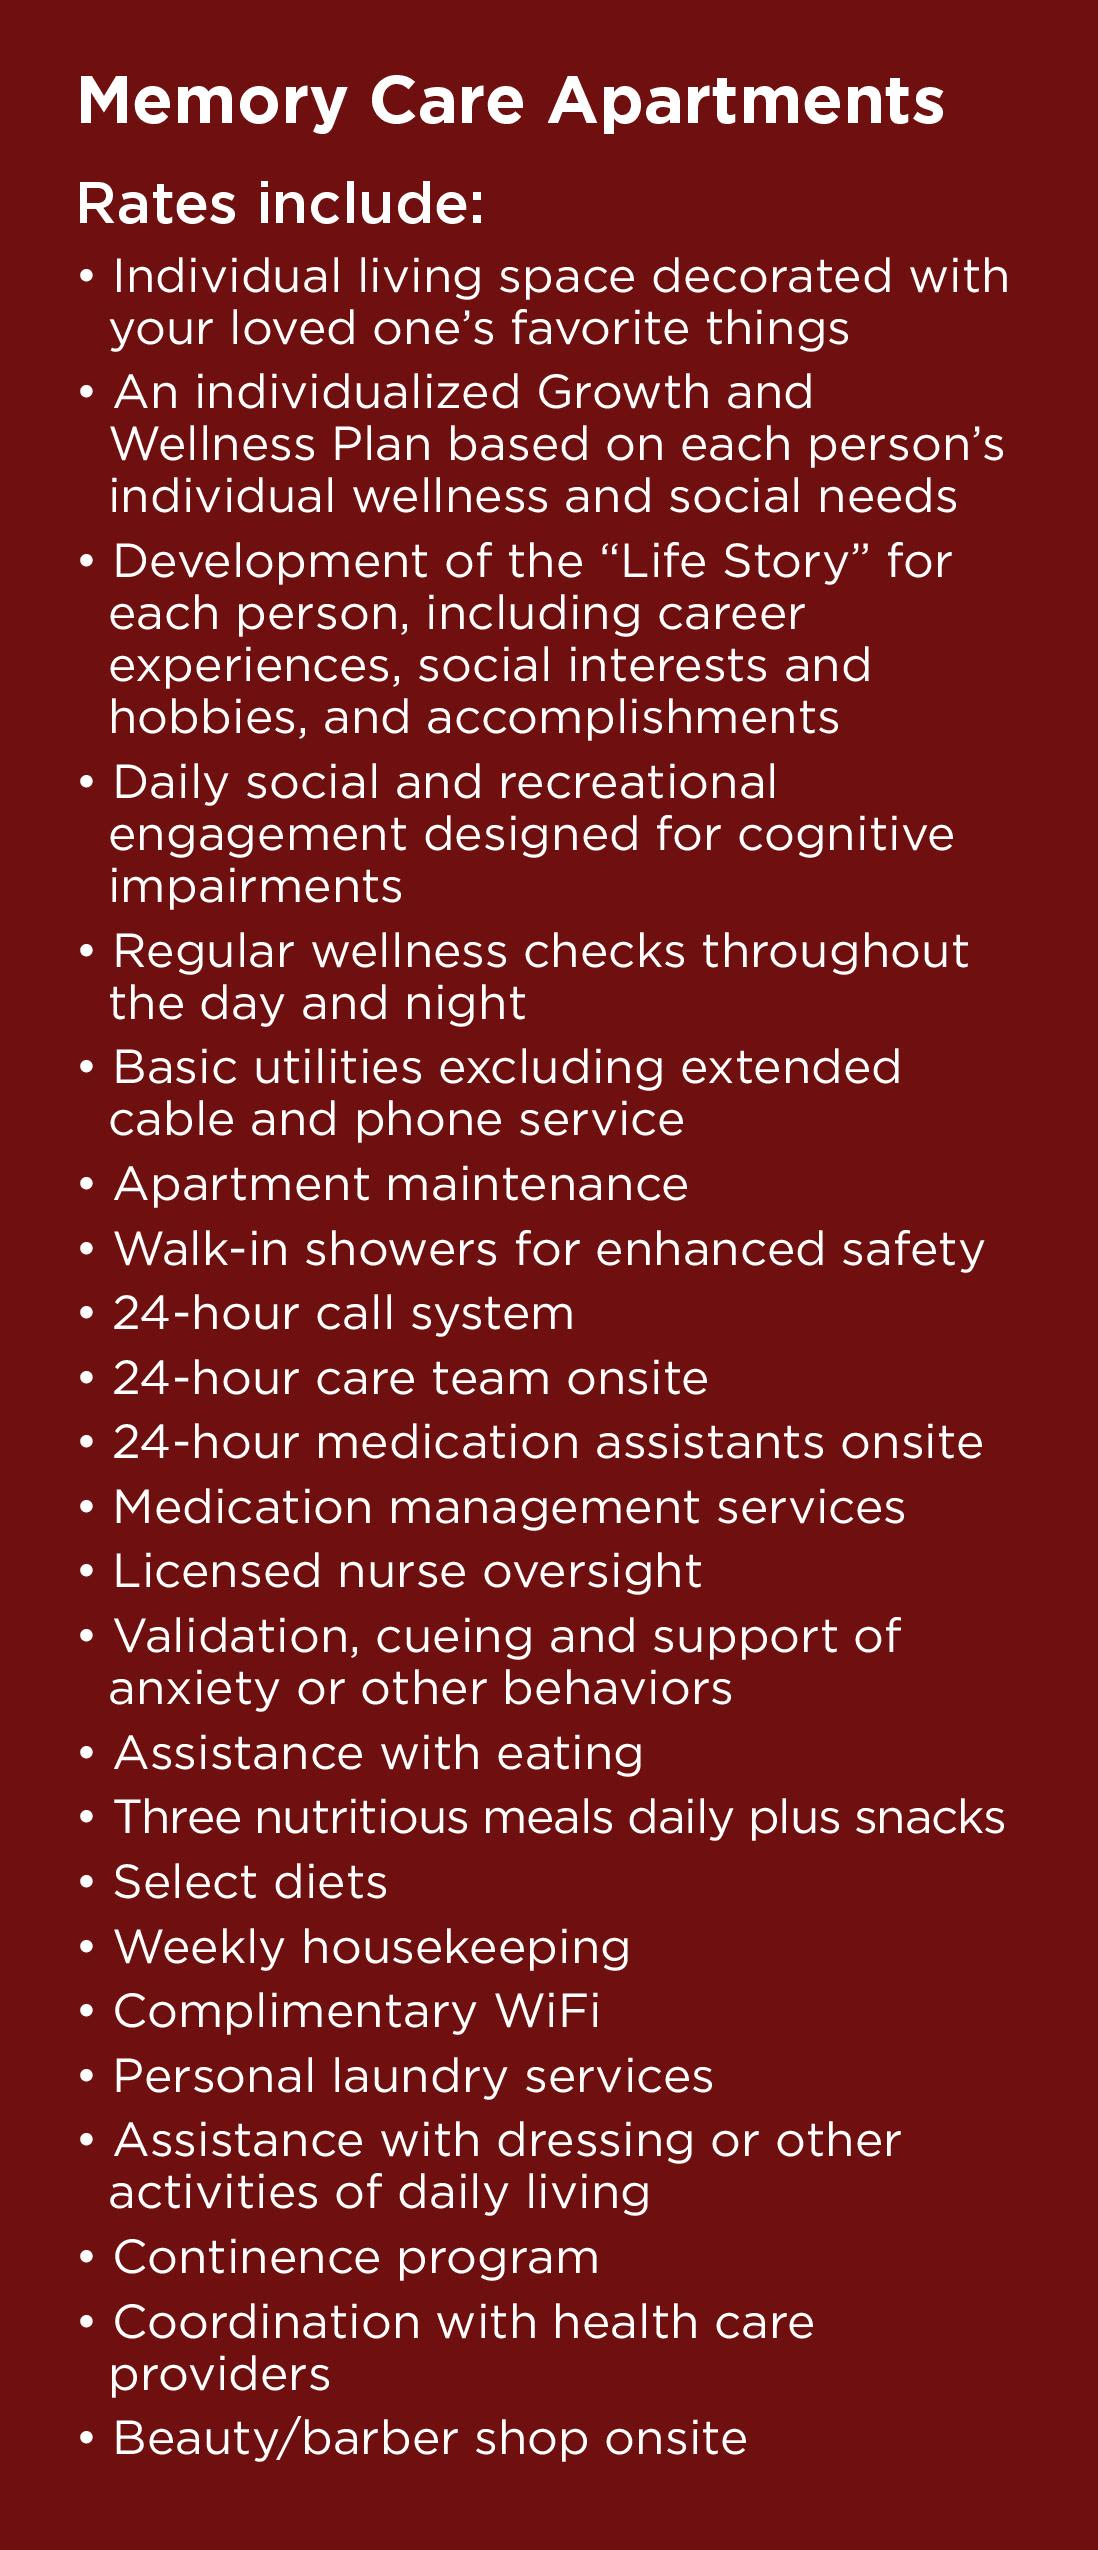 Whats included in memory care rates at Wildwood Canyon Villa Assisted Living and Memory Care in Yucaipa, California